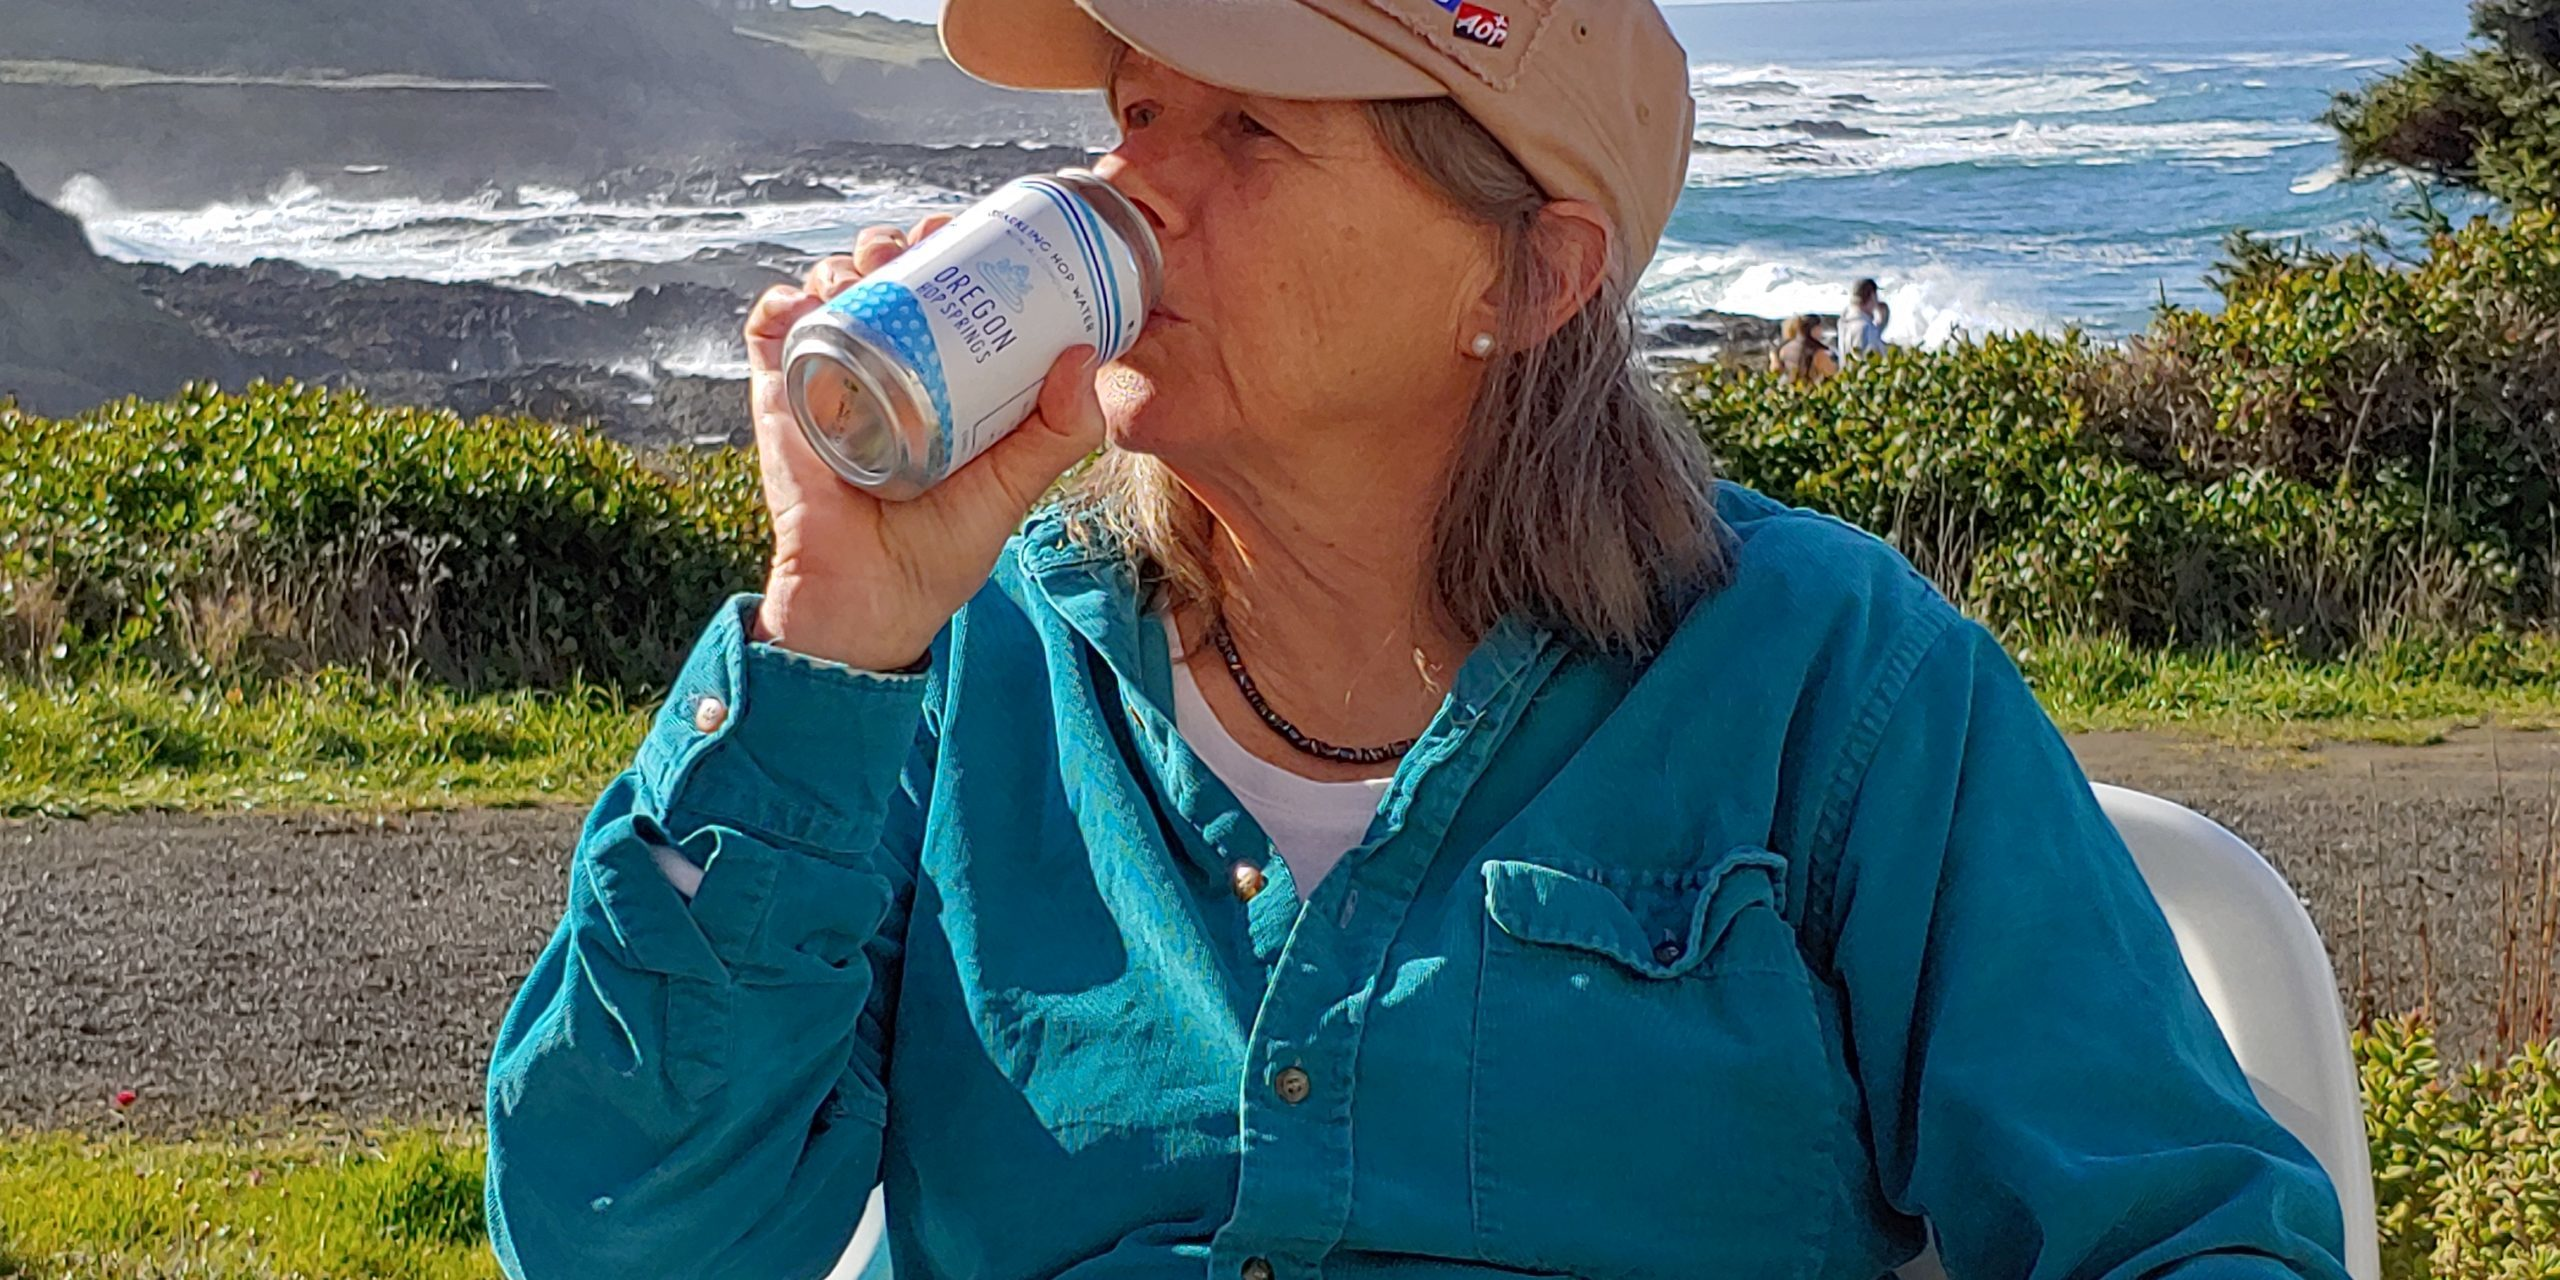 Co-founder Cindy enjoying the view and the Hop Water